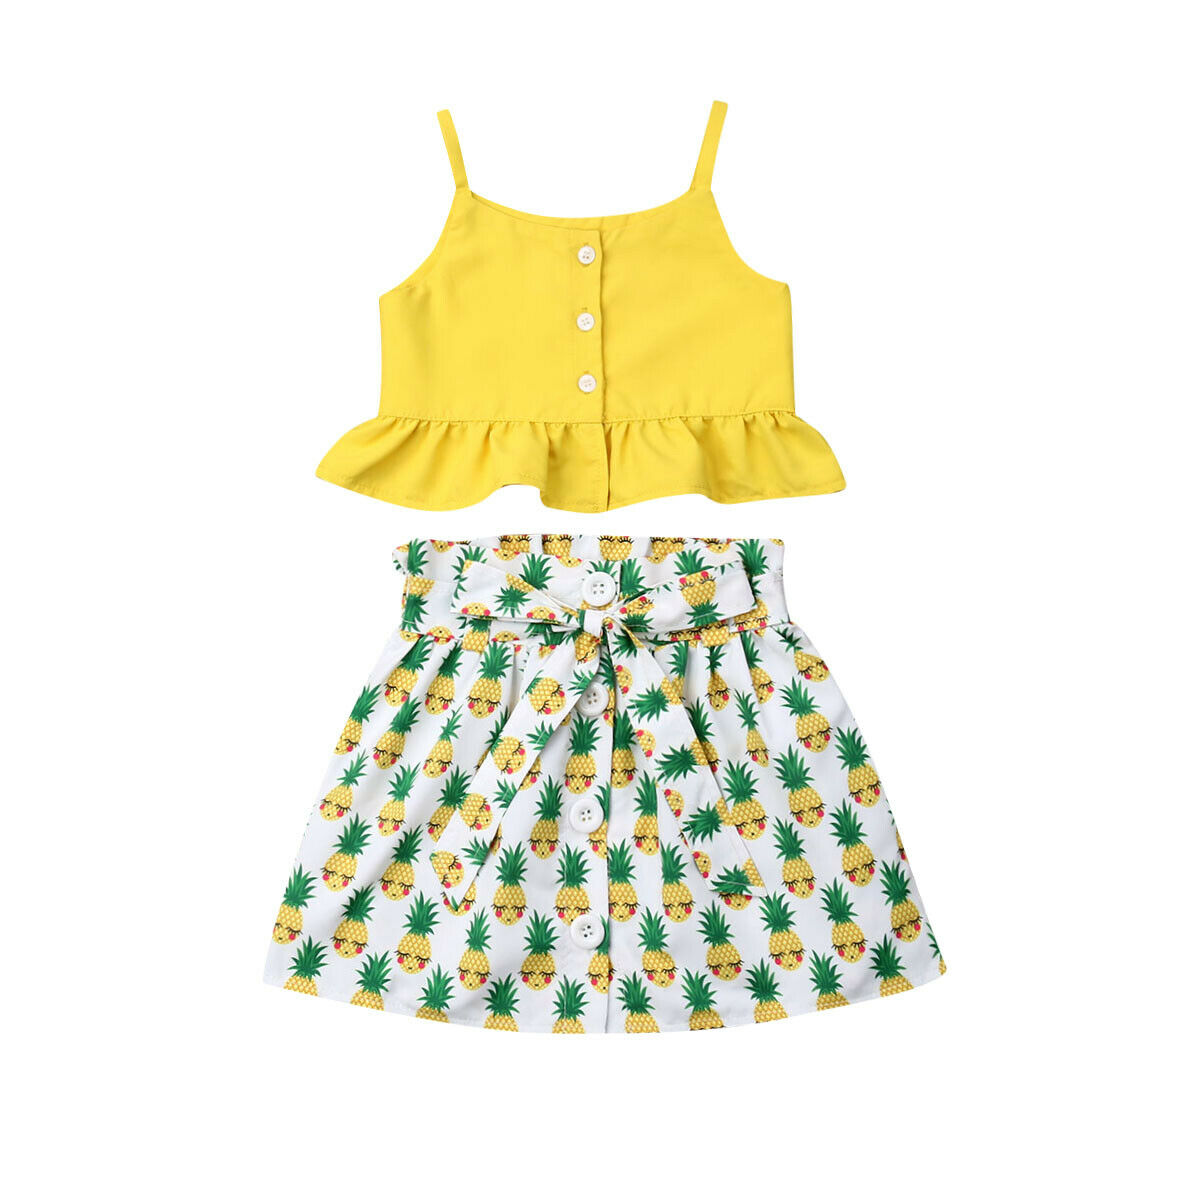 2019 Newest Style Newborn Kid Baby Girl Spring Summer Clothing Sleeveless Tops Skirts Outfit Adorable Clothes Set 6m-4y To Ensure A Like-New Appearance Indefinably